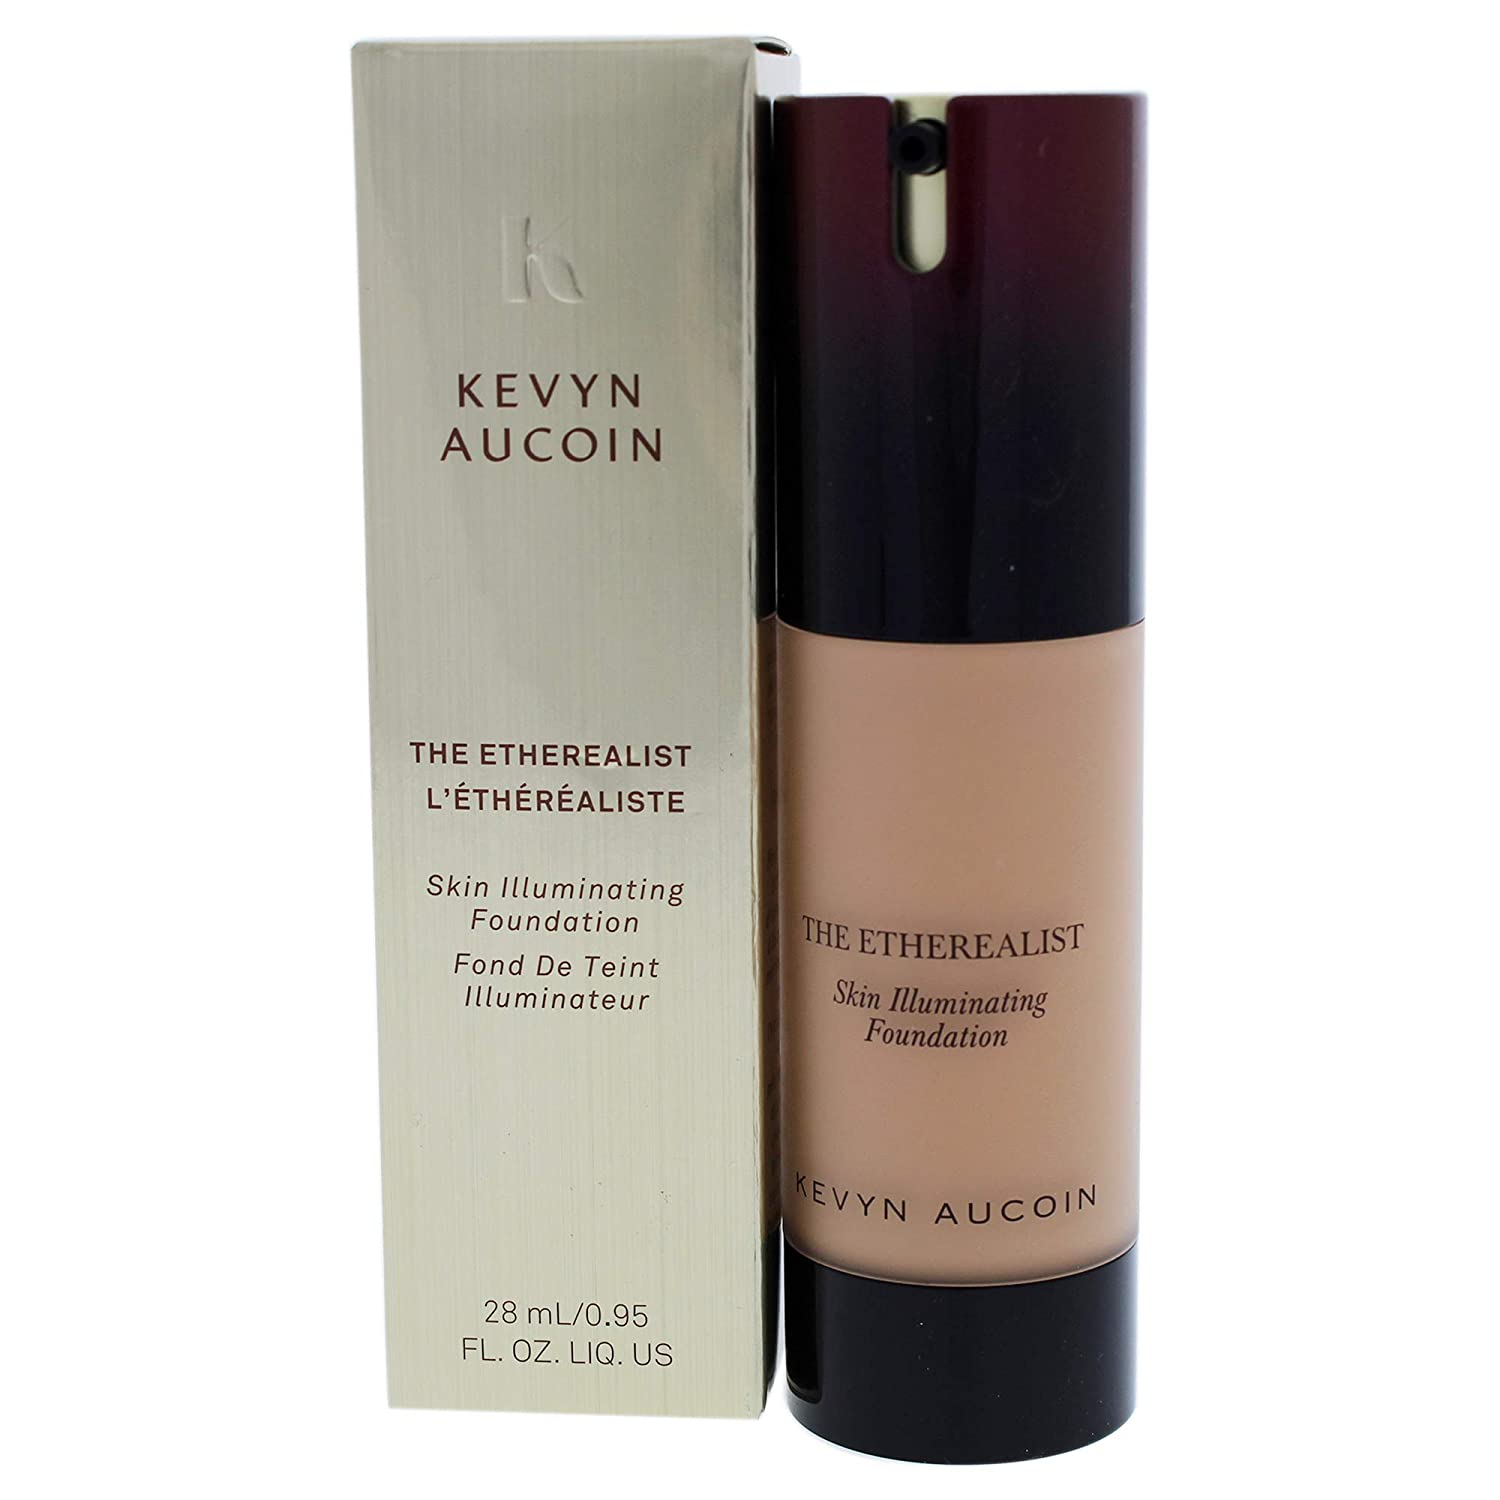 The Etherealist Skin Illuminating Foundation by Kevin Aucoin